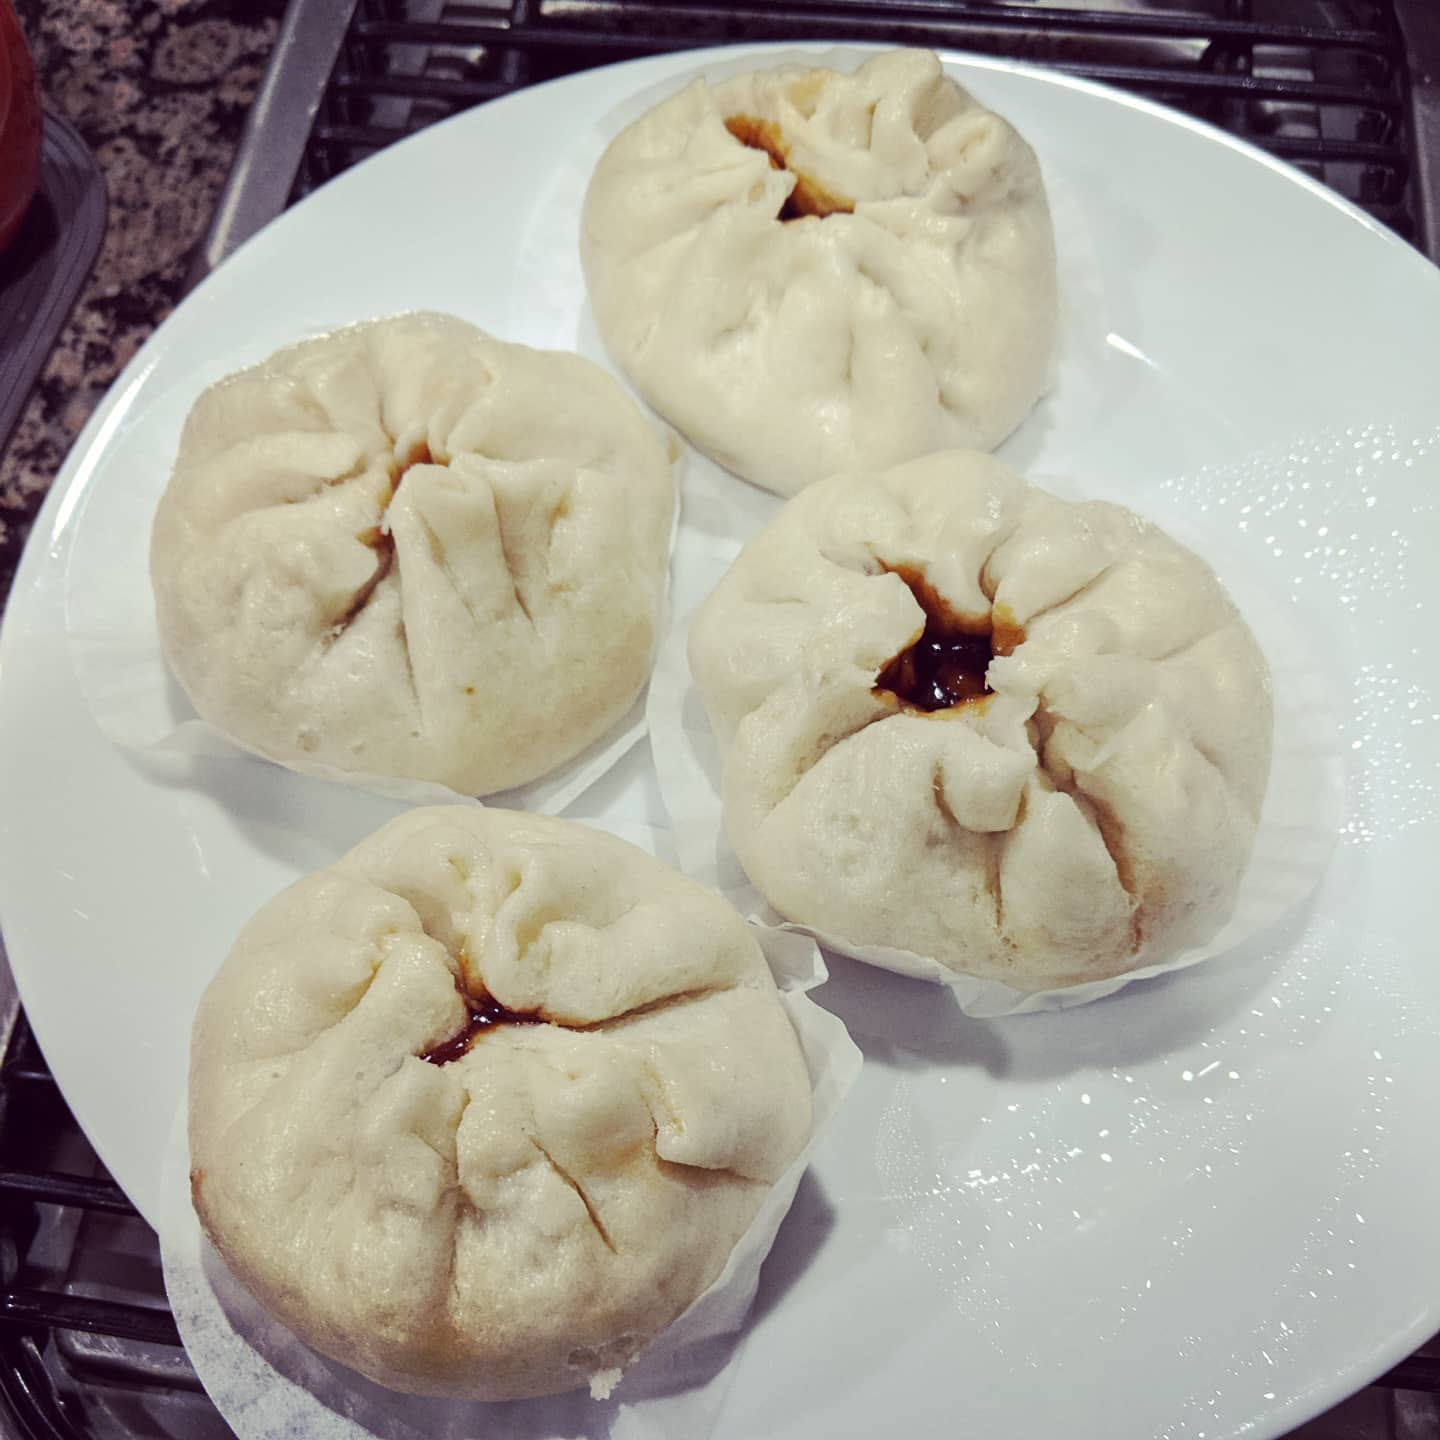 Made char siu bao for the first time and they are pretty banging if I do say so myself